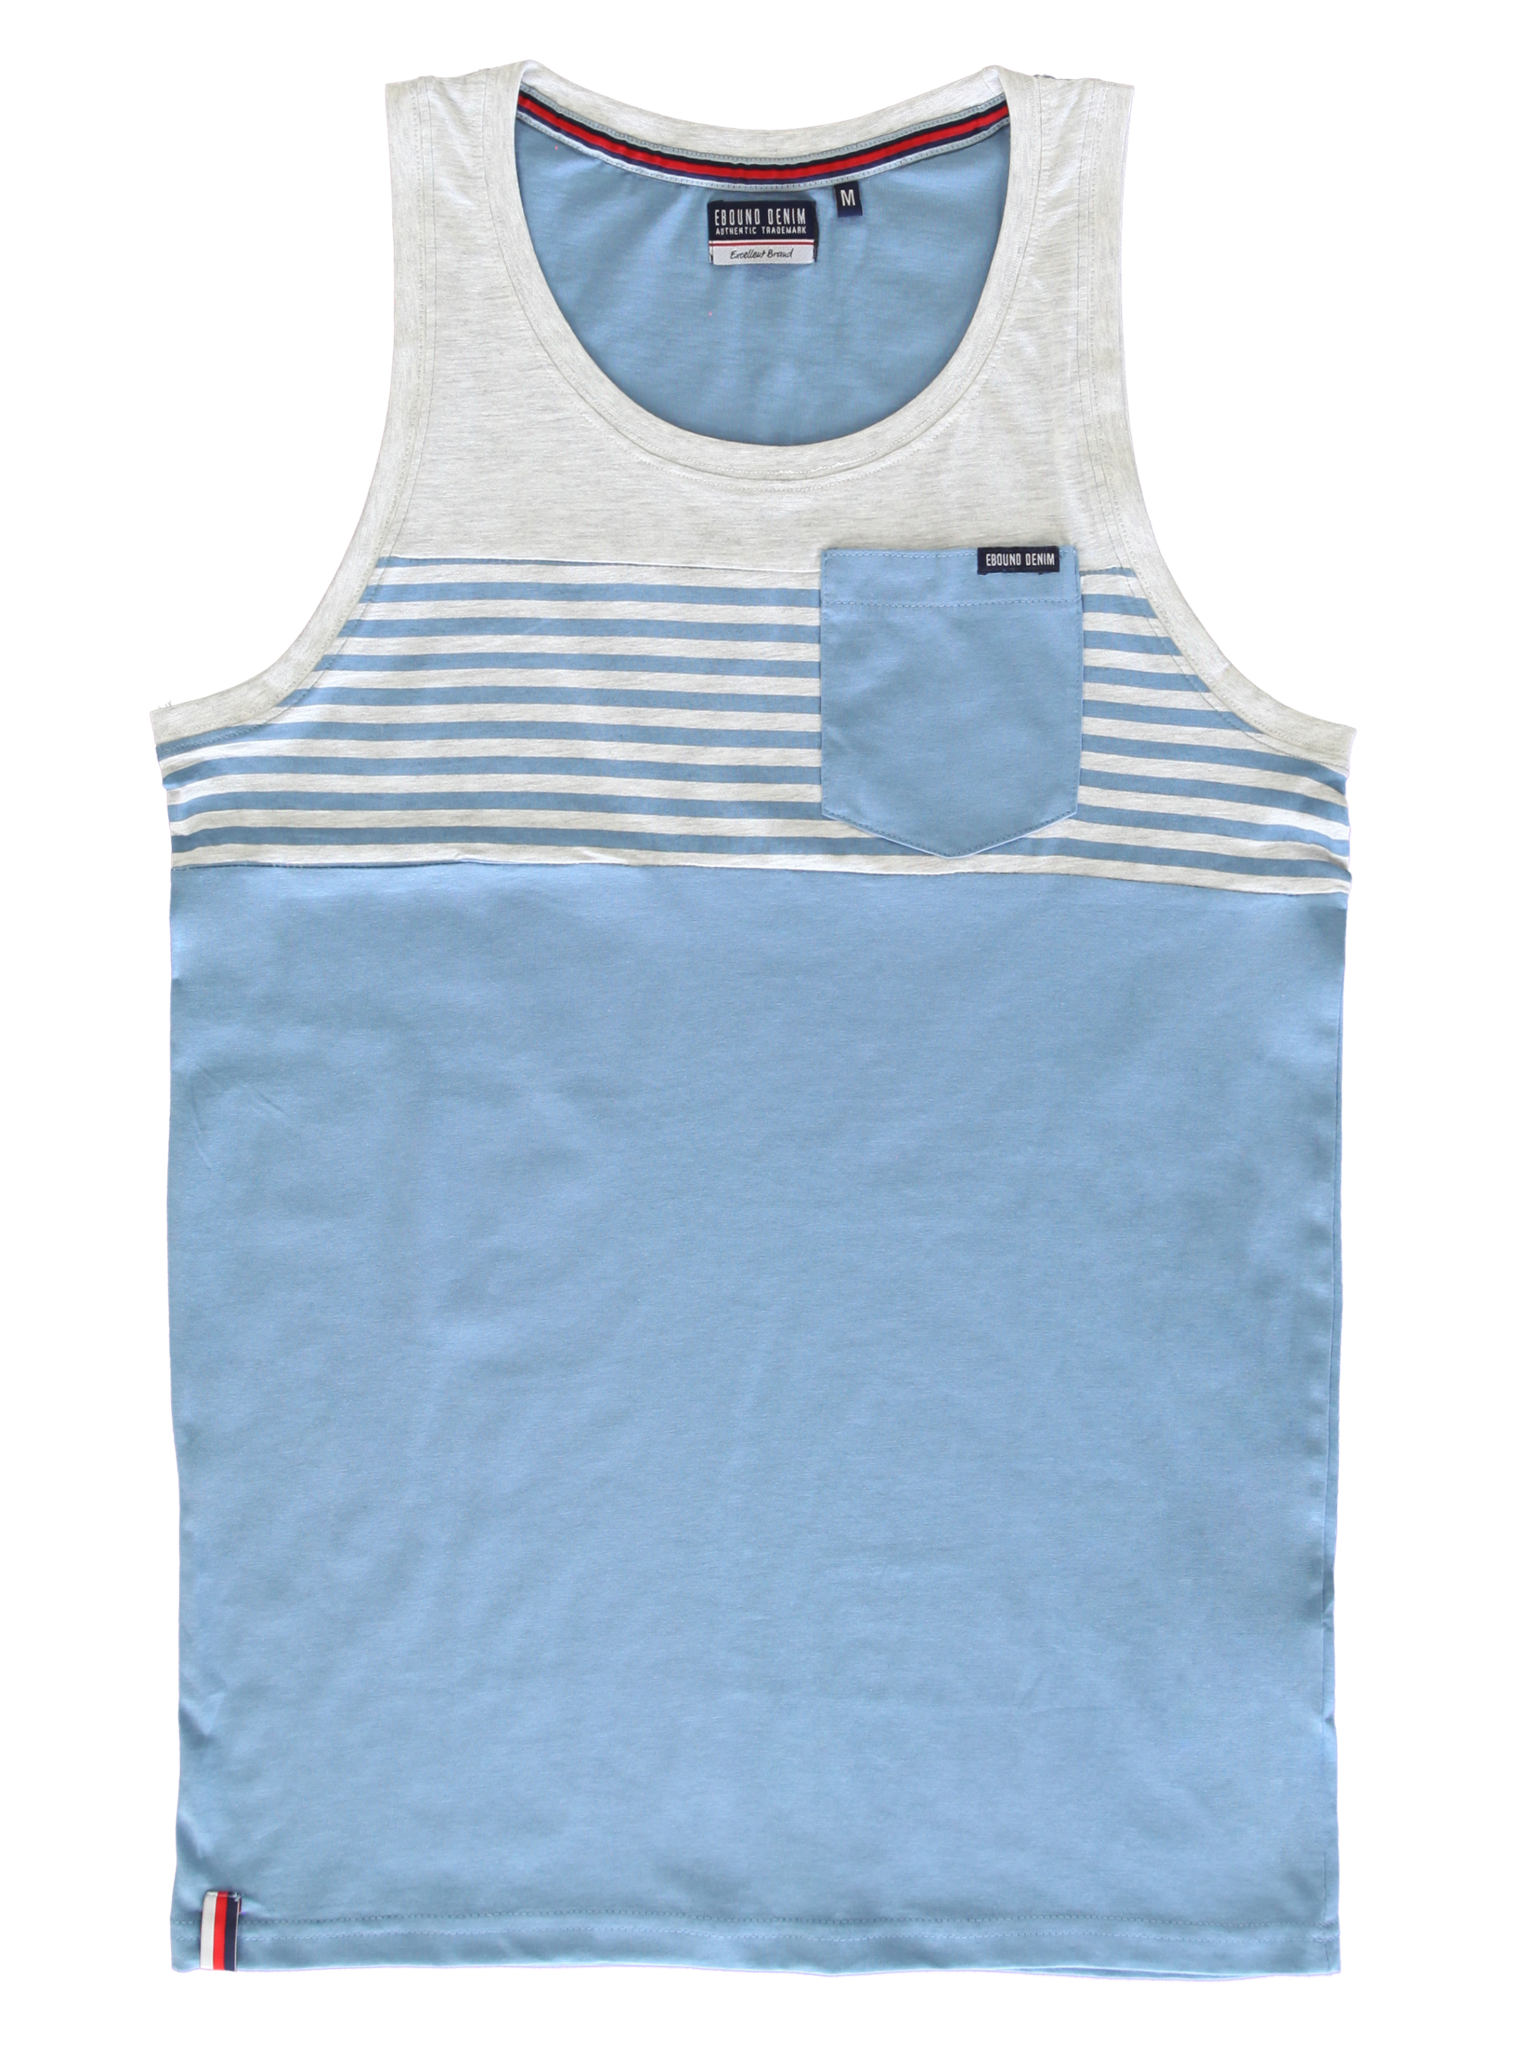 All Brands | Summerproducts Men | Singlet | 18 pcs/box